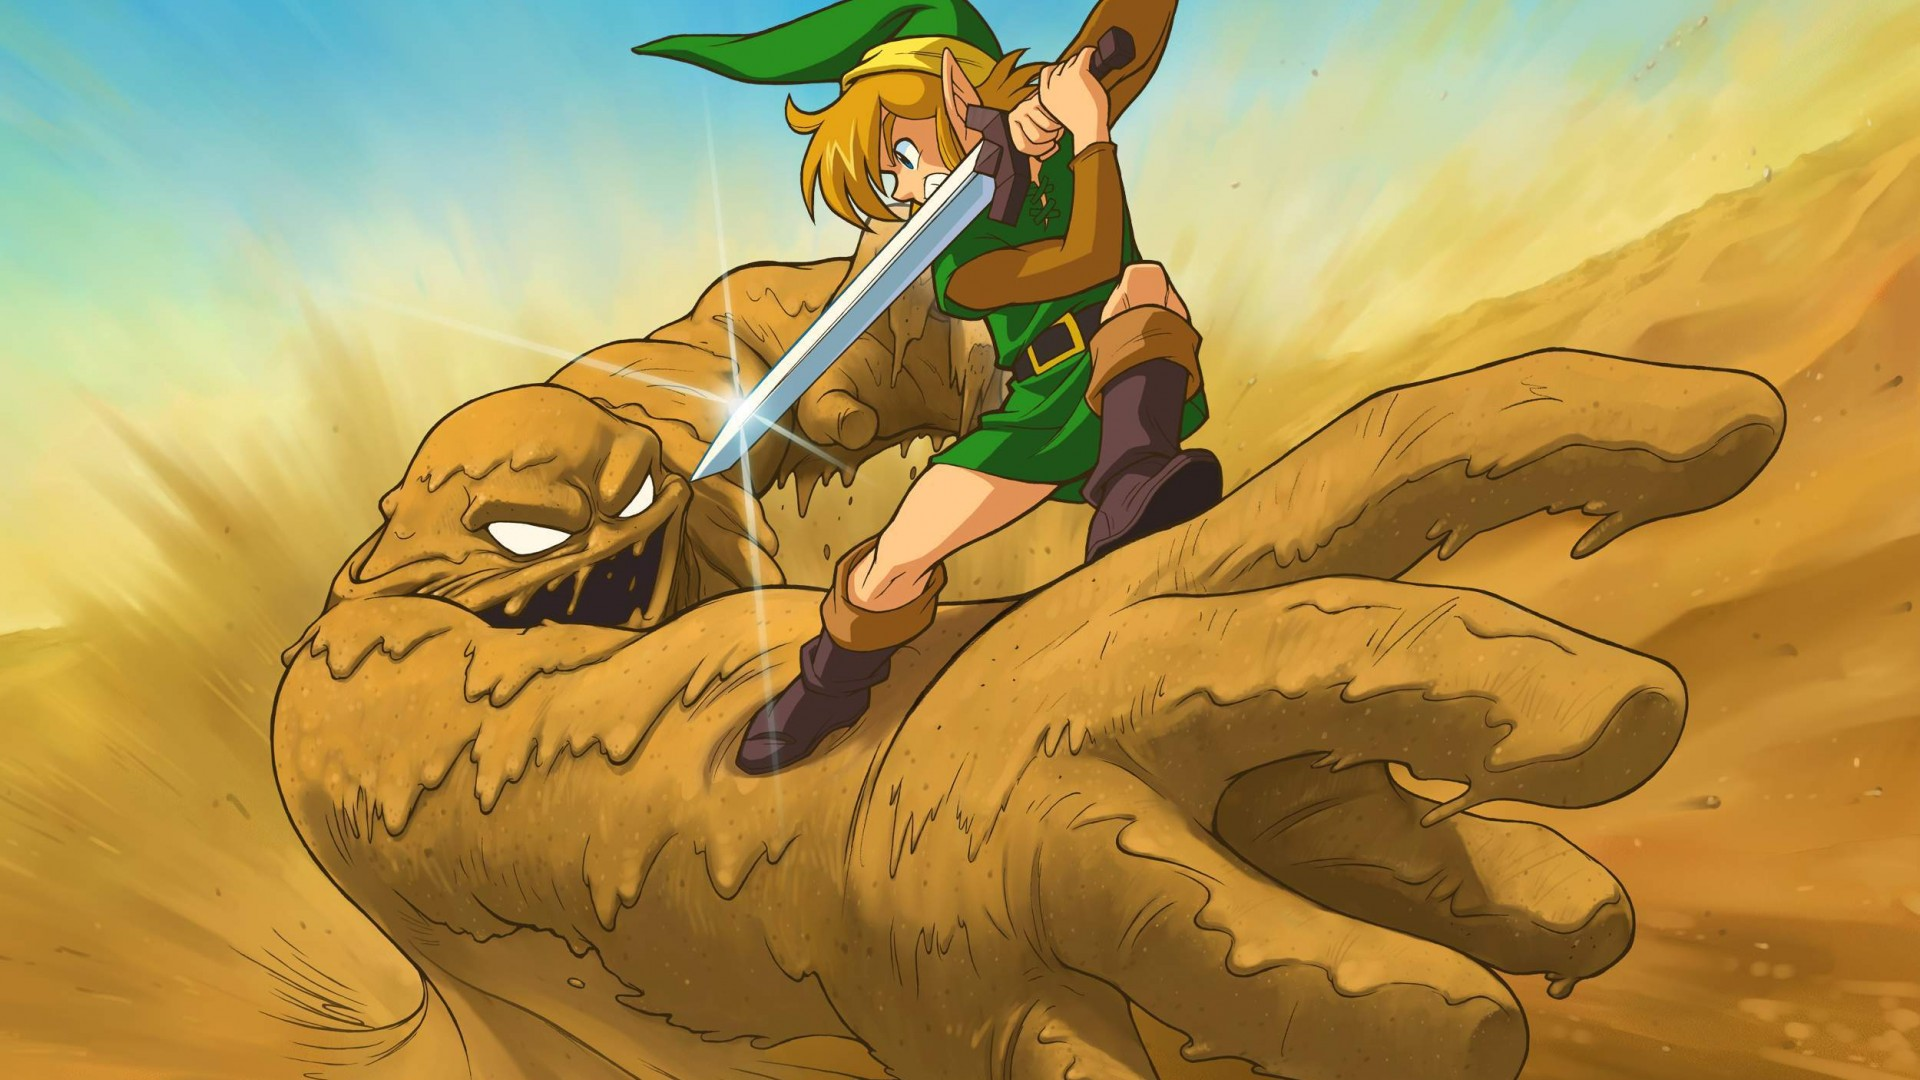 Zelda Vs Sandman HD Wallpaper Fine Wallpaperss 1920x1080